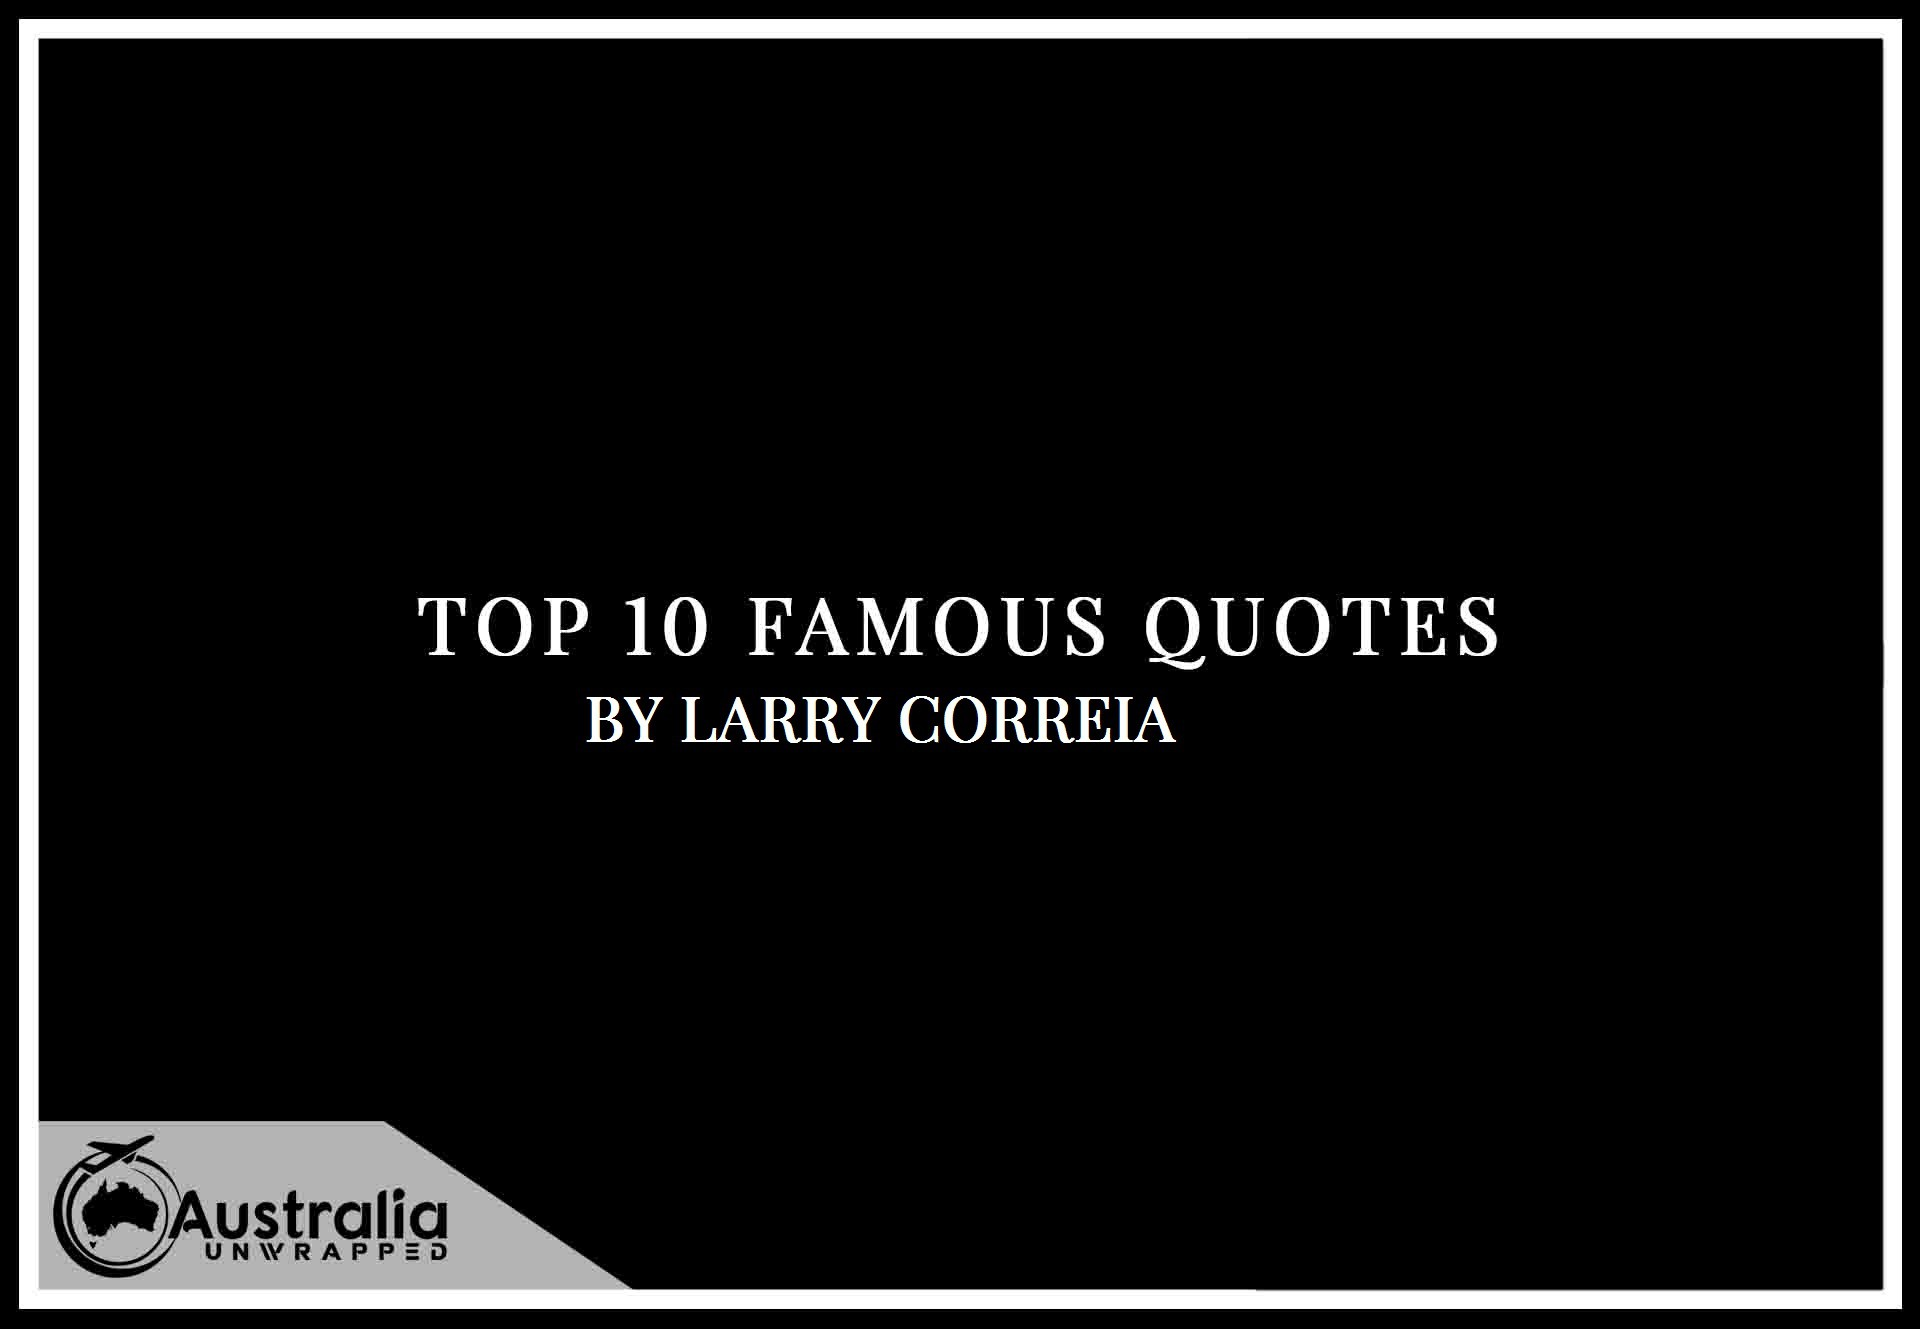 Larry Correia's Top 10 Popular and Famous Quotes